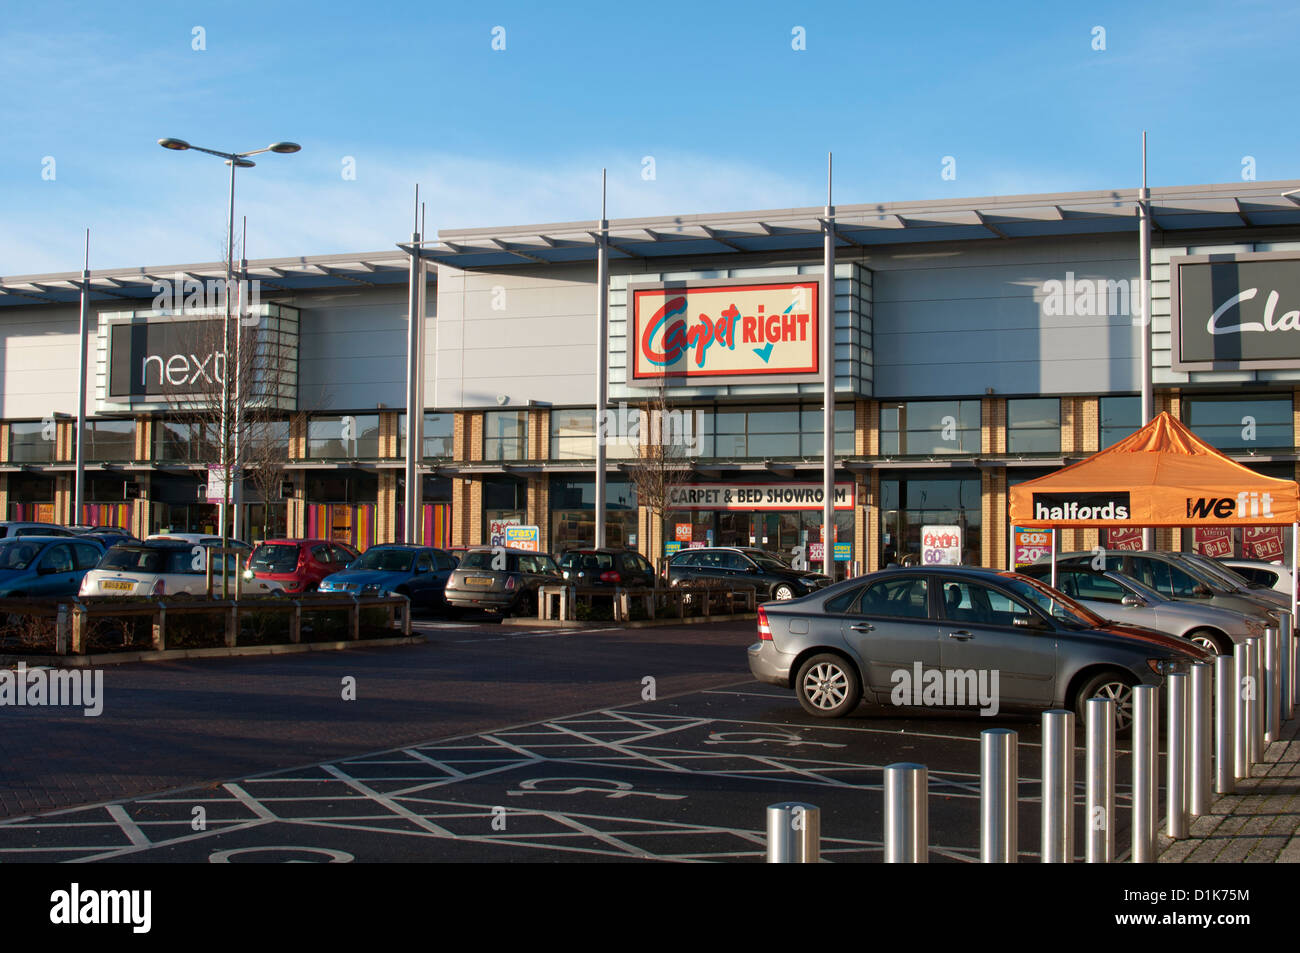 Leamington Shopping Park. Leamington Shopping Park (Image: Google) Weekend opening times vary across stores. Stores open between 9am and am on .